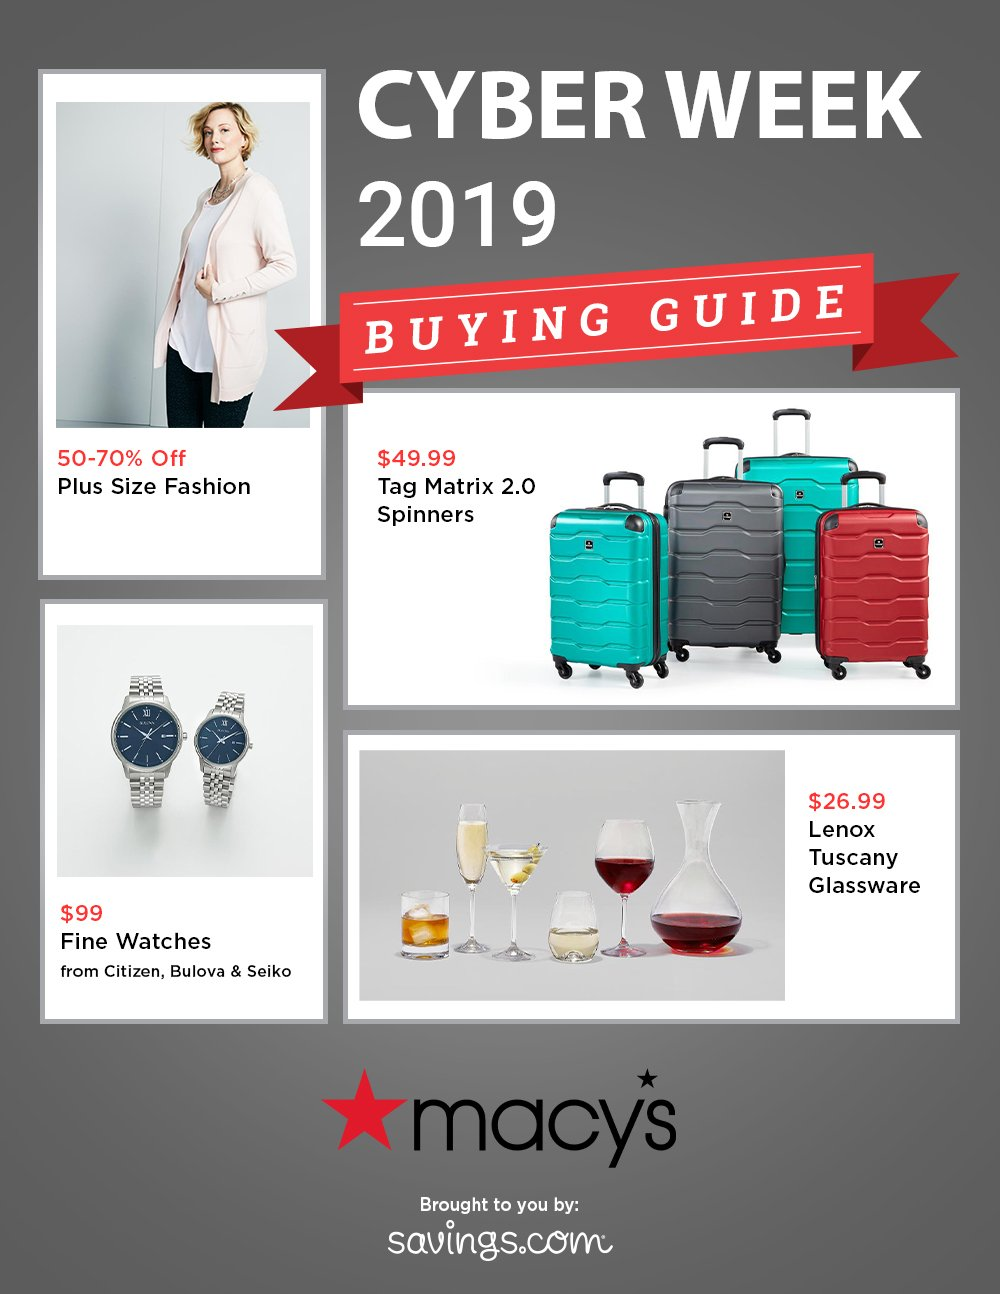 Macy's Cyber Week Buying Guide 2019 Page 2